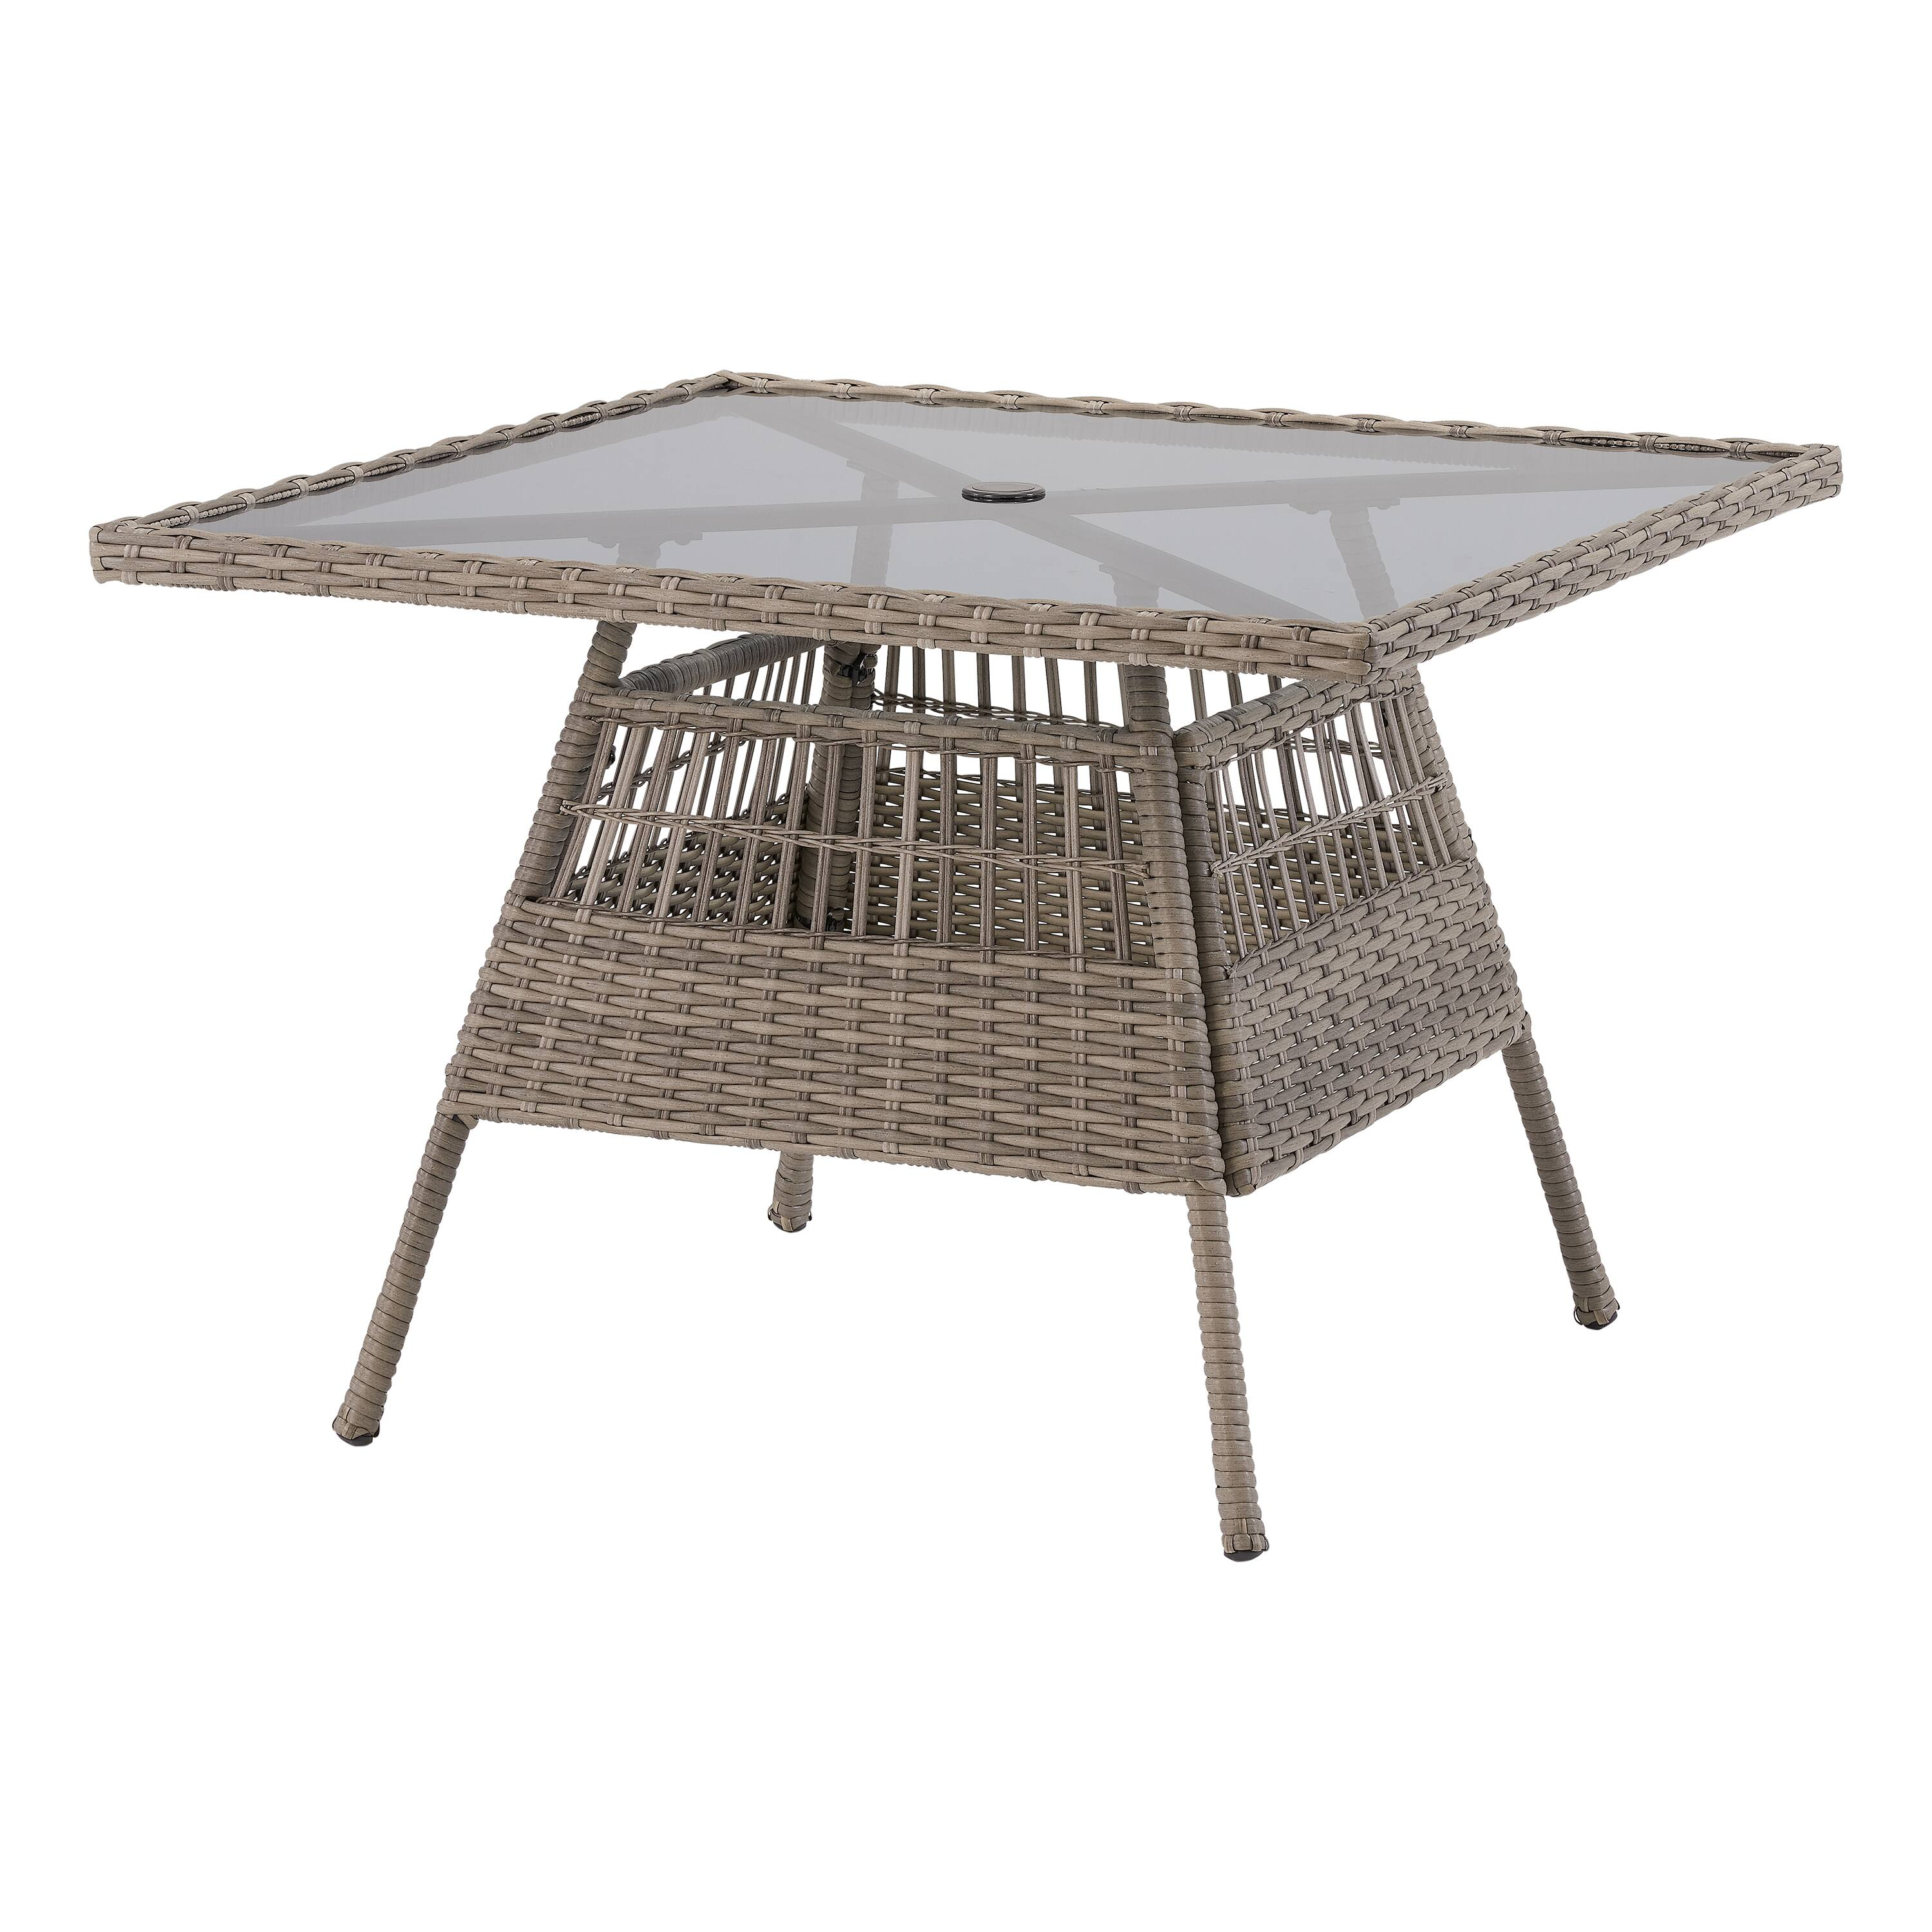 Better Homes & Gardens Belfair Square Outdoor Patio Coffee Table $55